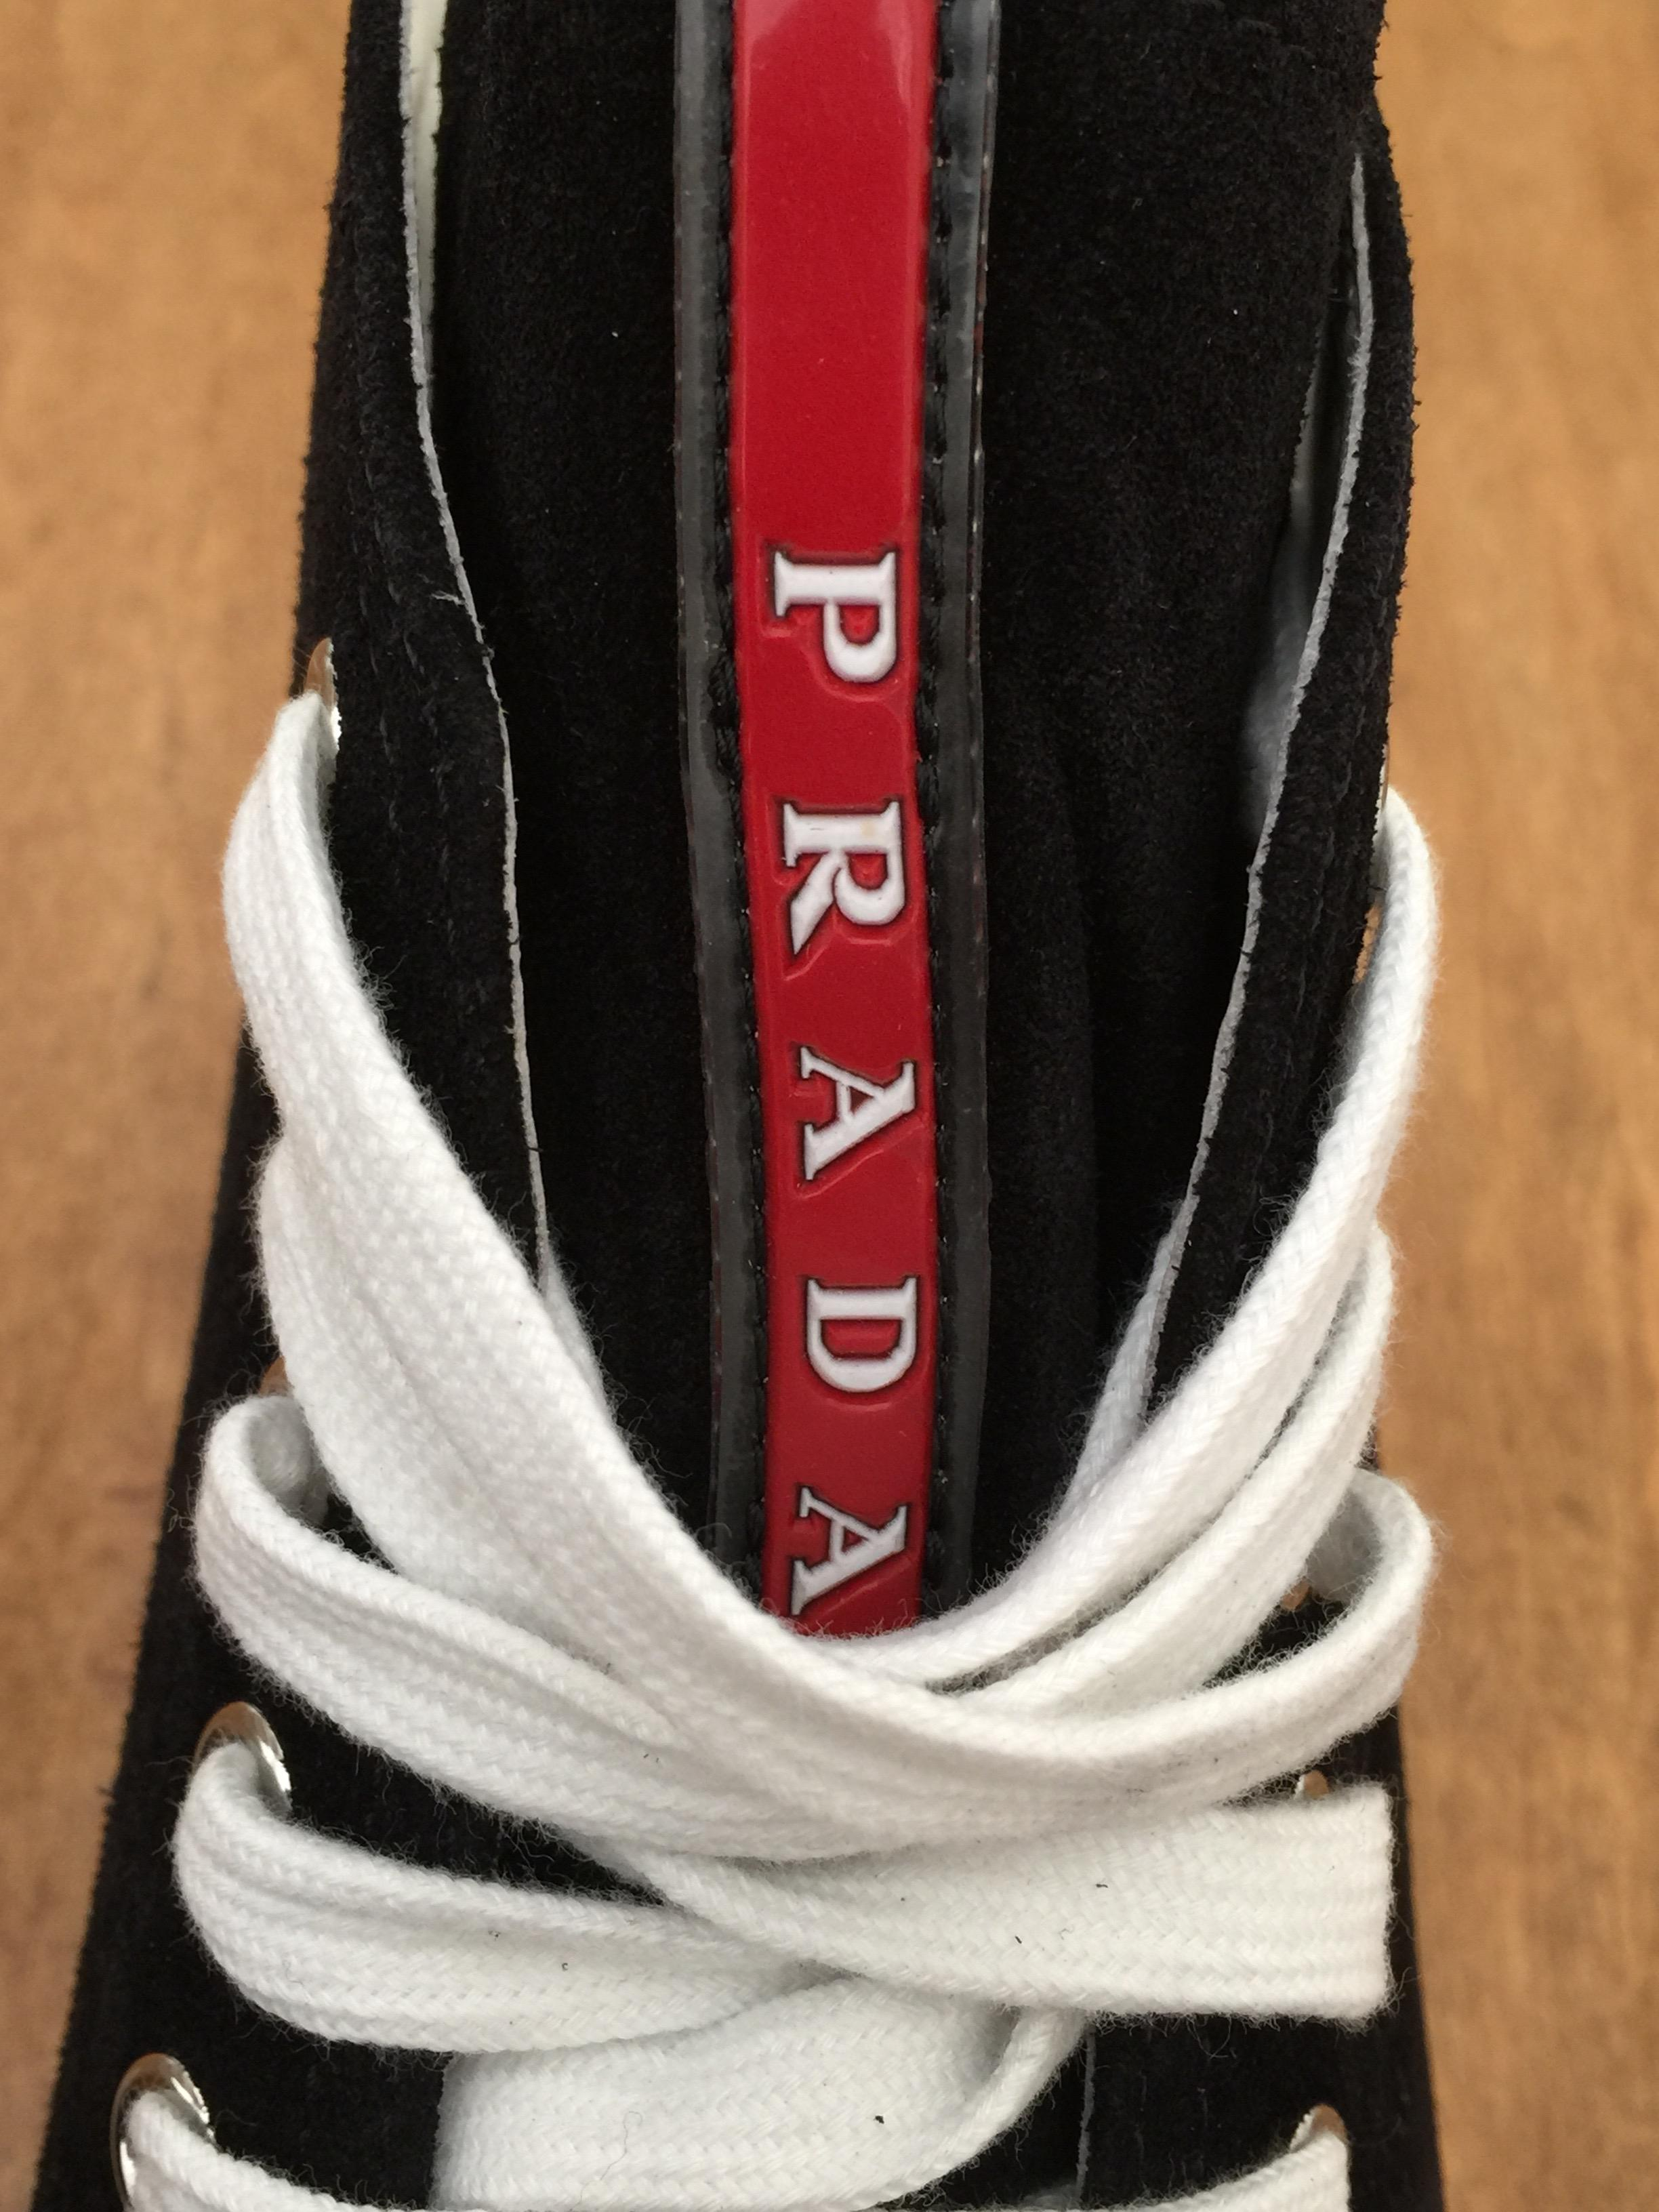 542ae244a03ee5 ... cheap prada black new womens high top sneakers 39 sneakers size us 9  tradesy 232ae 0b421